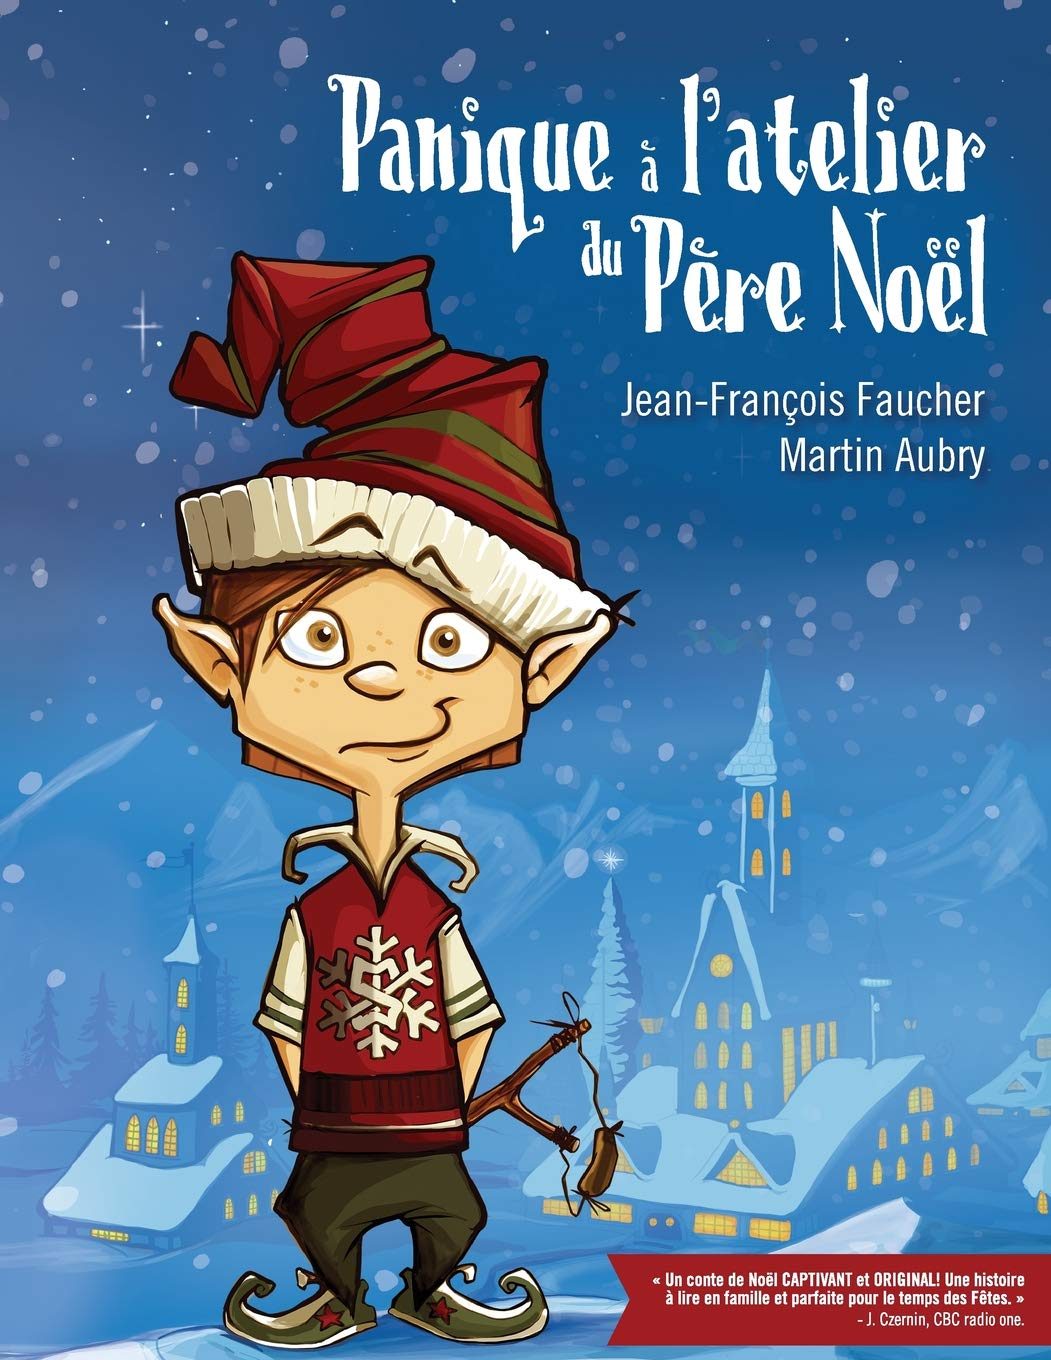 Panique a latelier du Pere Noel: Slush le lutin (Volume 1 ...